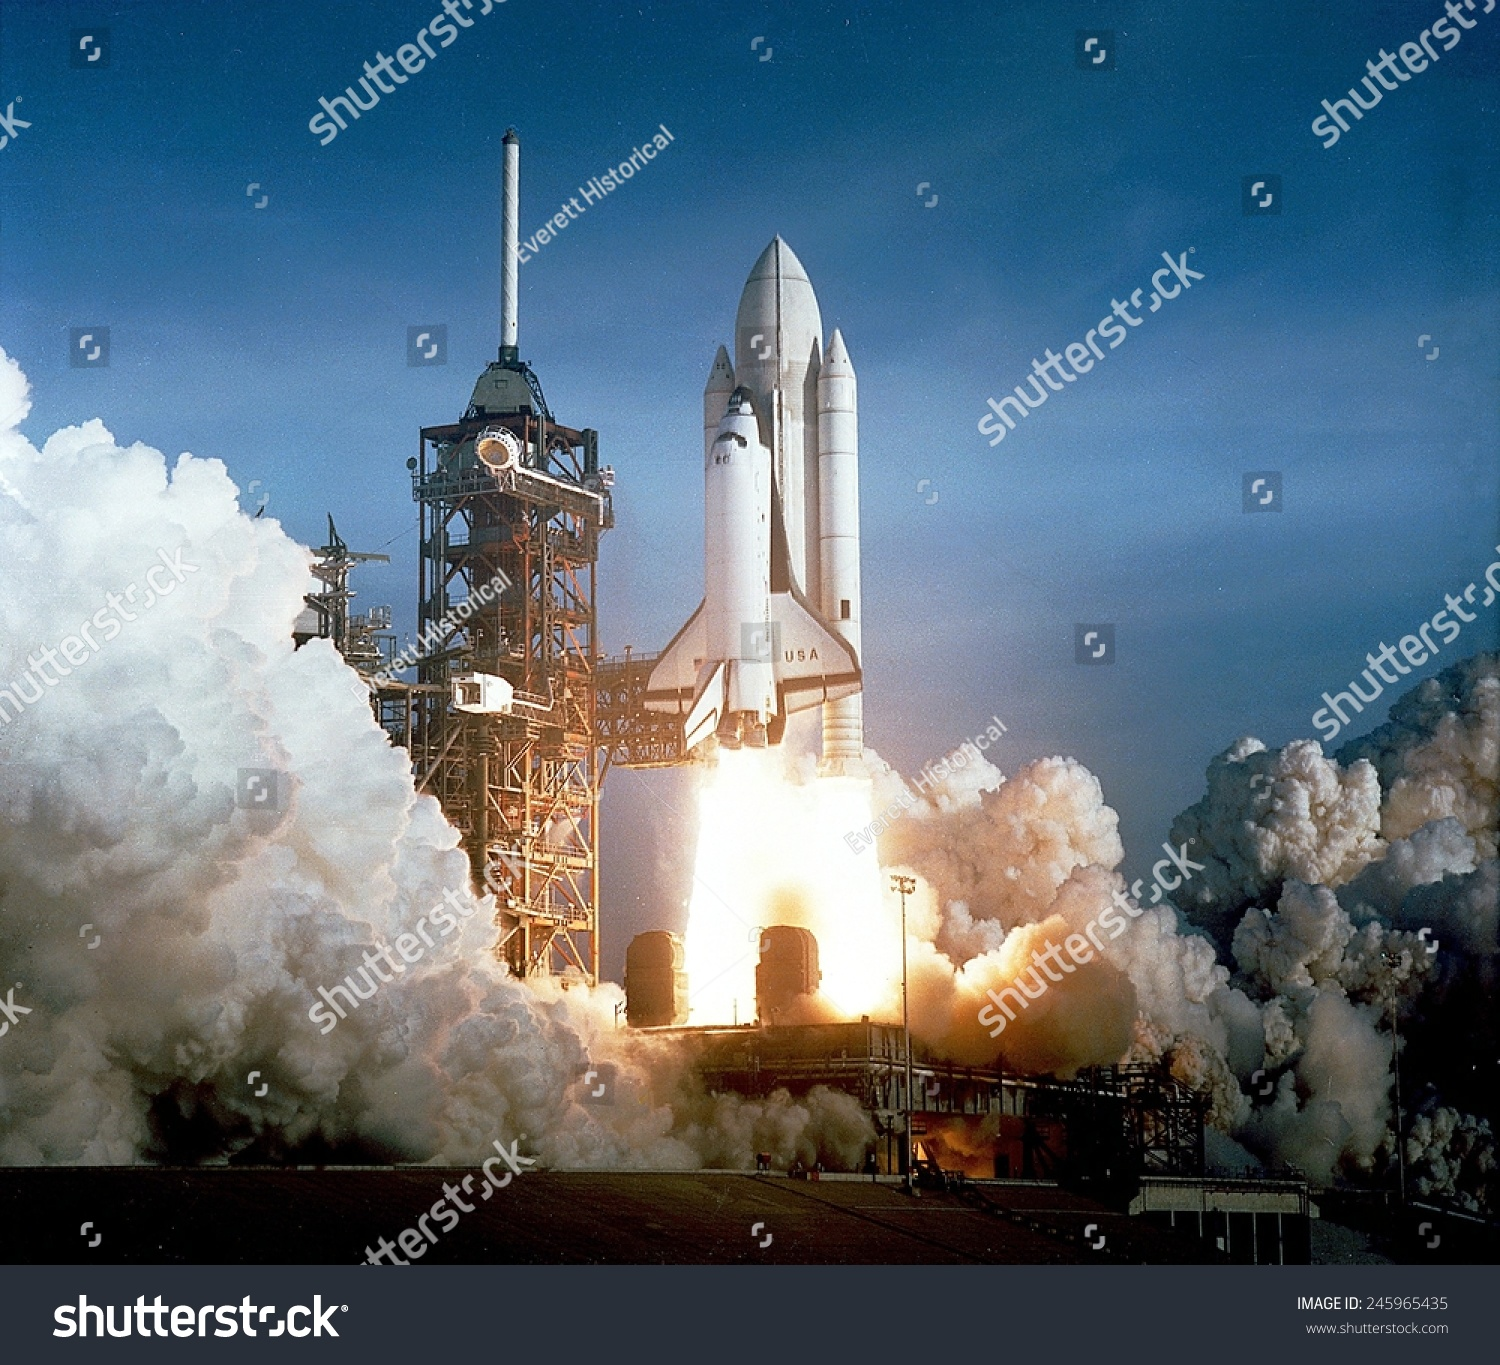 picture of the first u.s space shuttle - photo #6